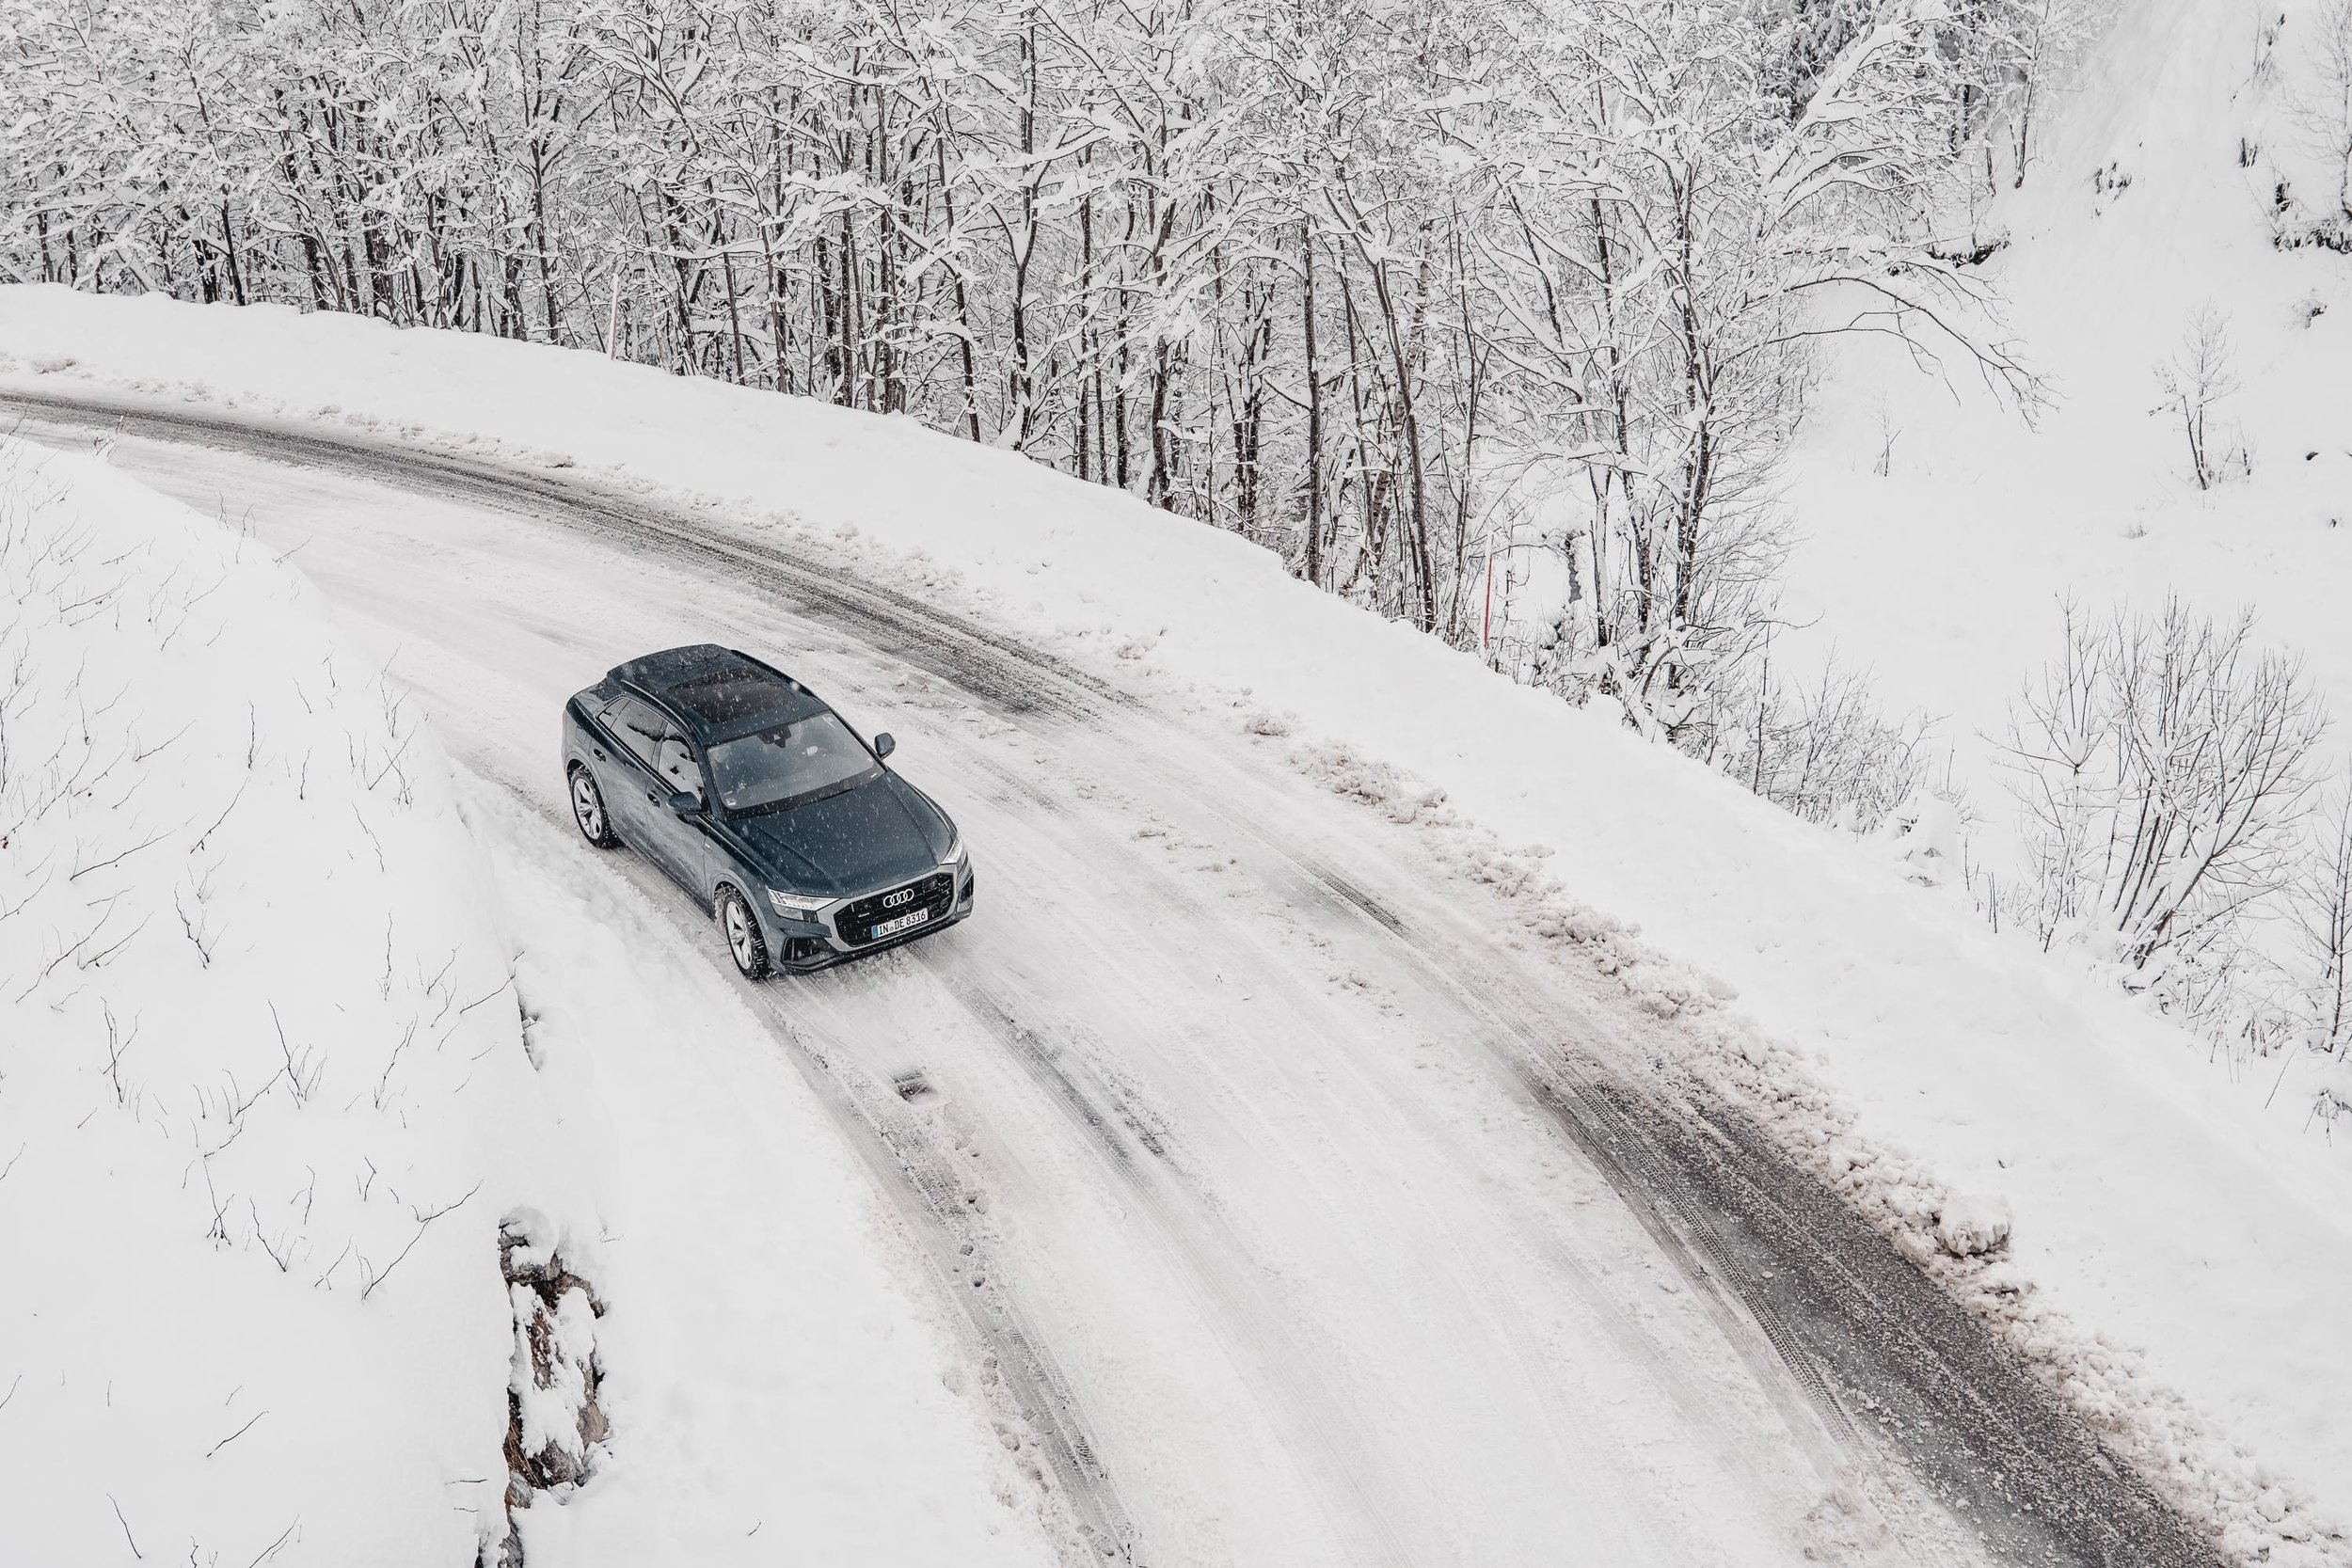 Maximilian-Otto_Best-of-the-Alps_Roadtrip_Winter-2018_35.jpg